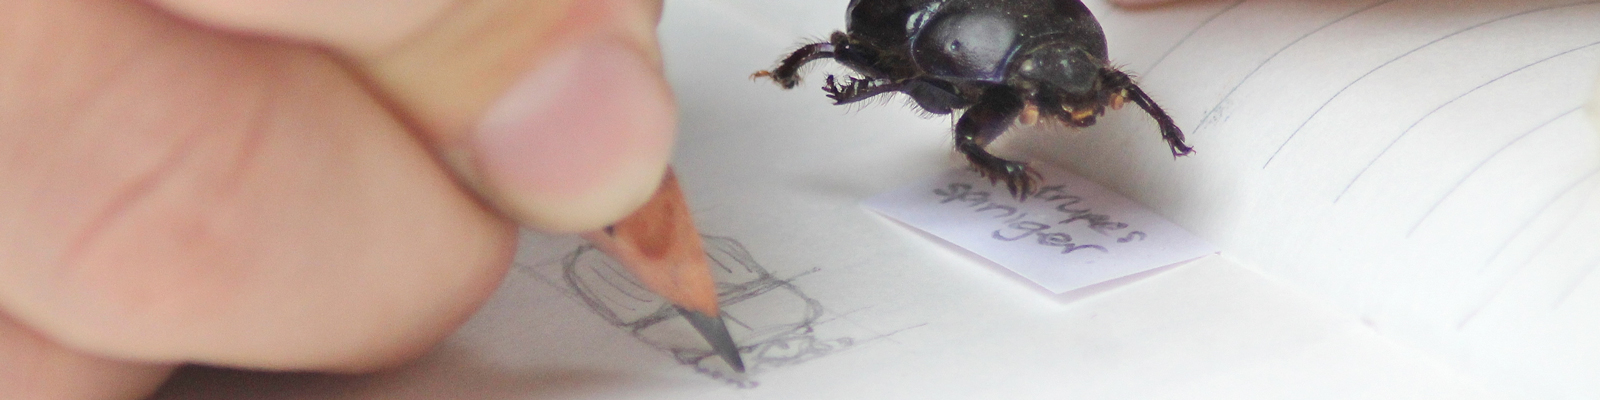 Pencil drawing of beetle